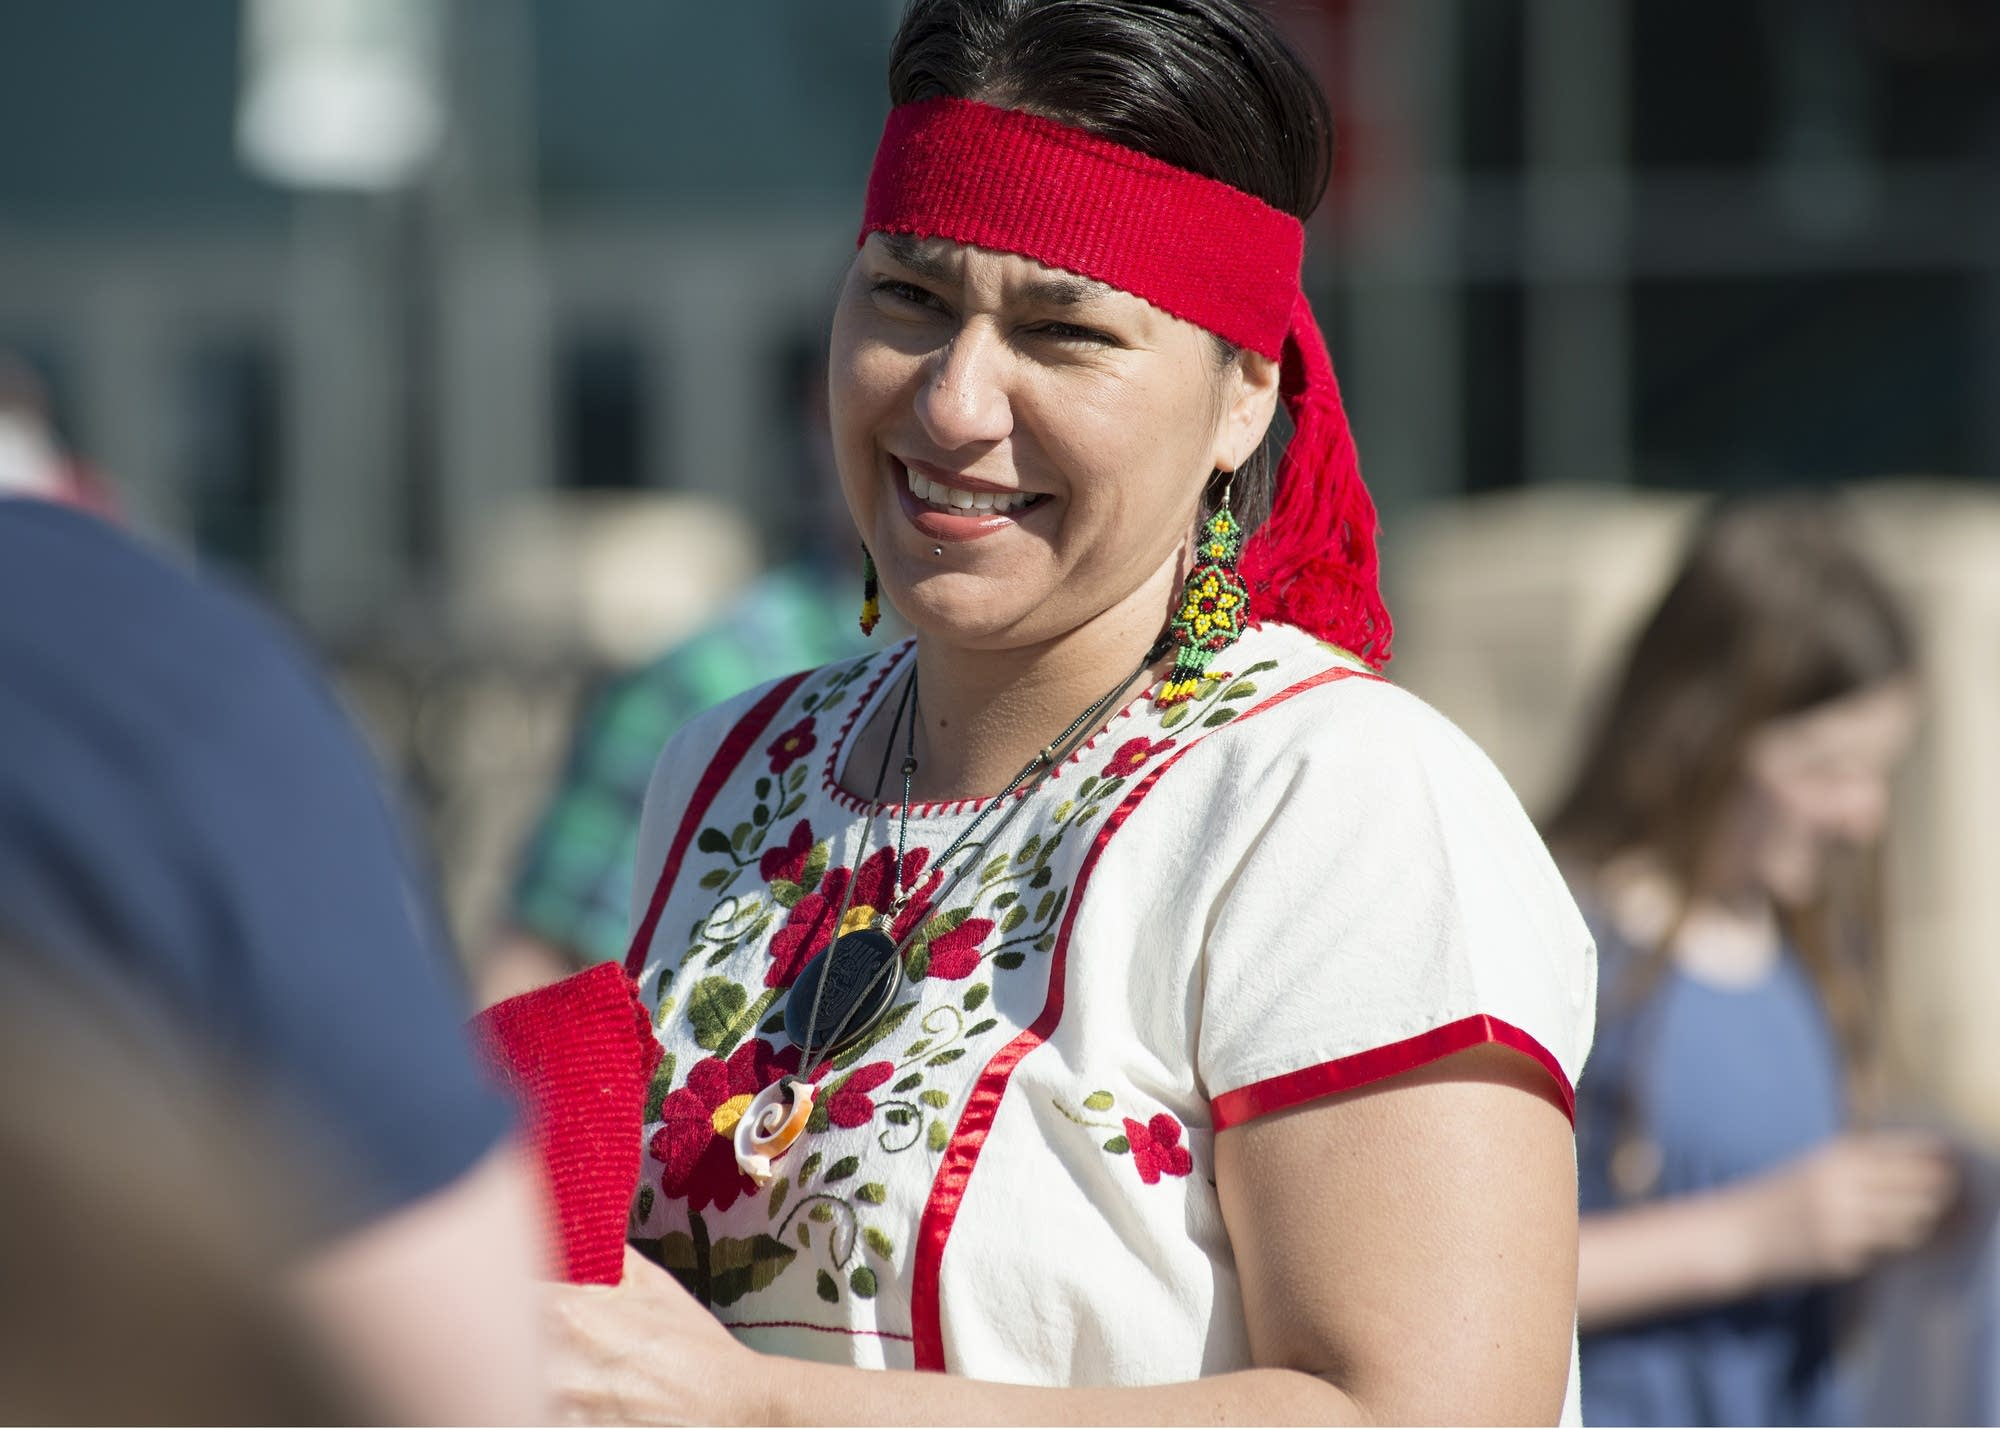 Elle Meza, part of an indigenous people's dance and activism group.